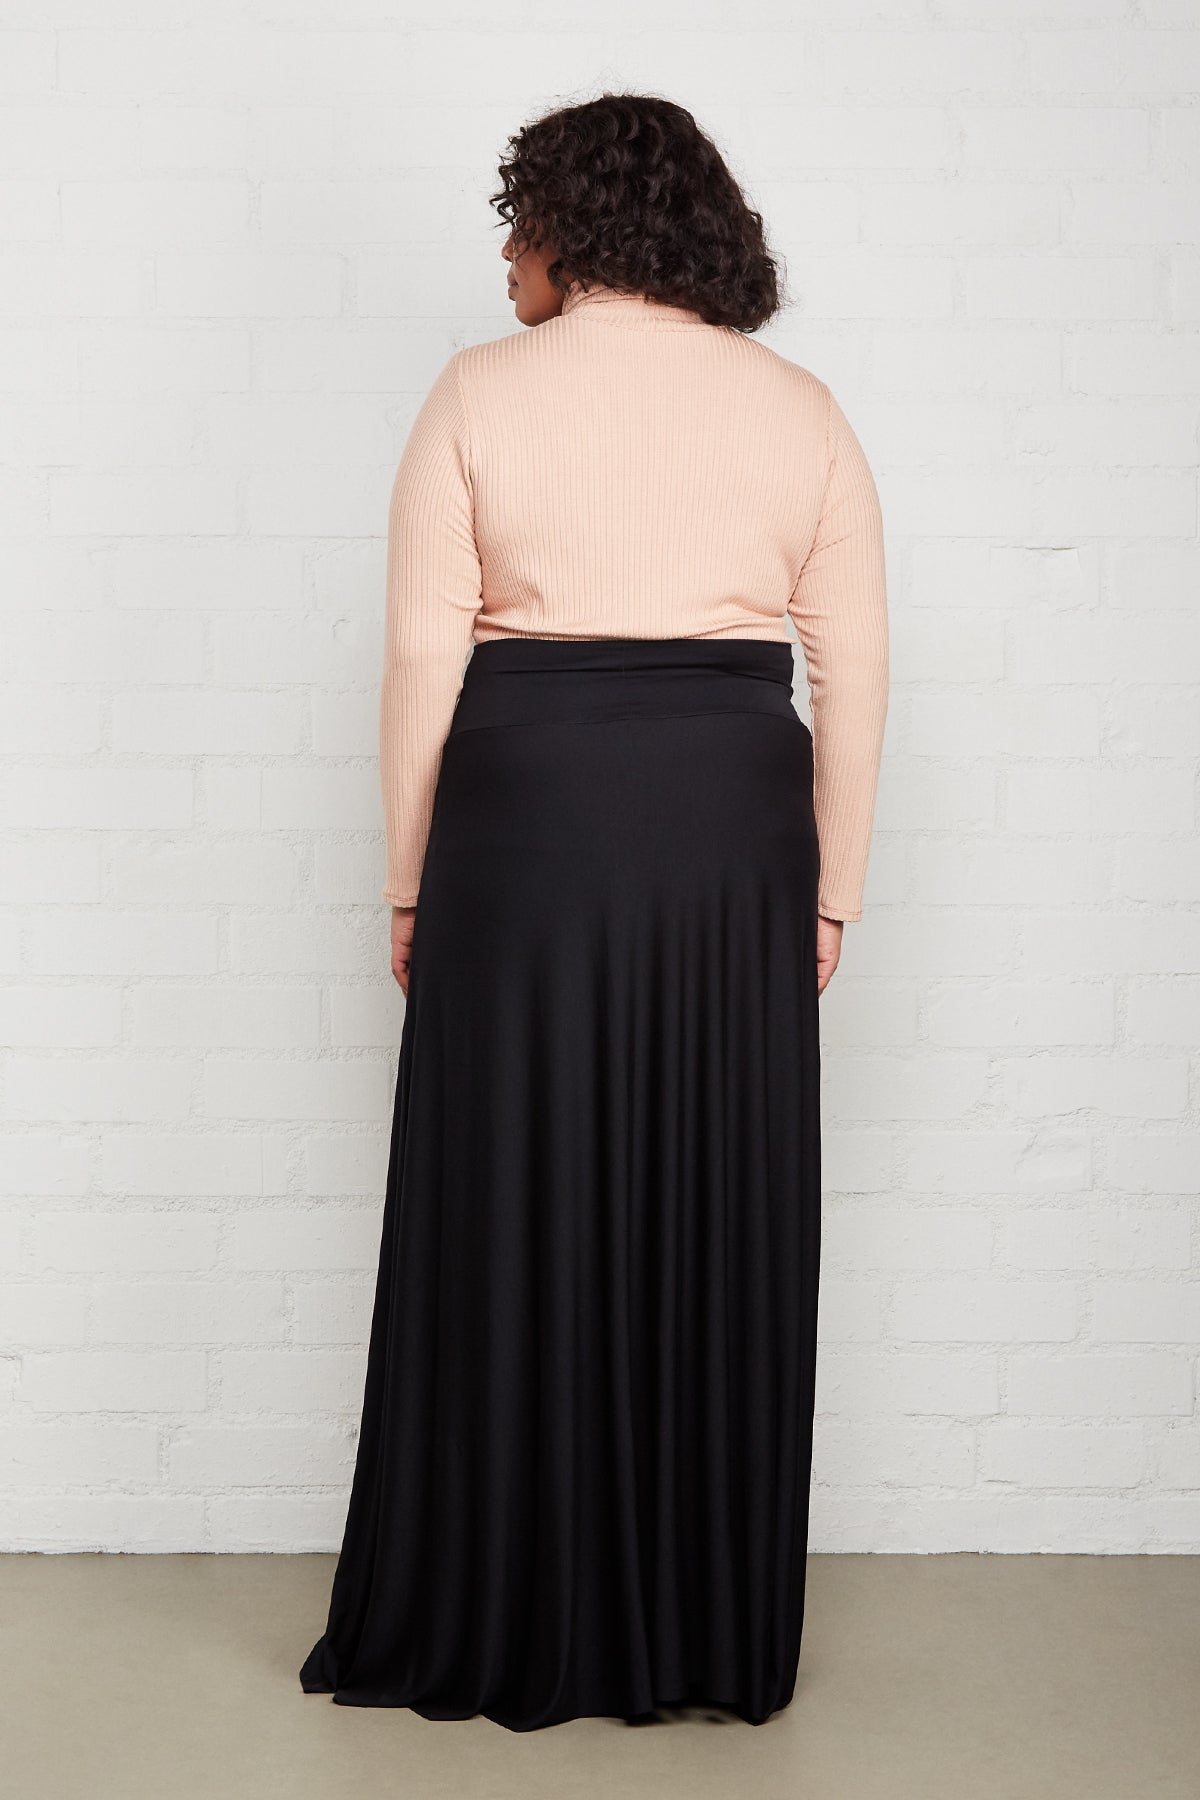 LONG FULL SKIRT - BLACK, Plus Size